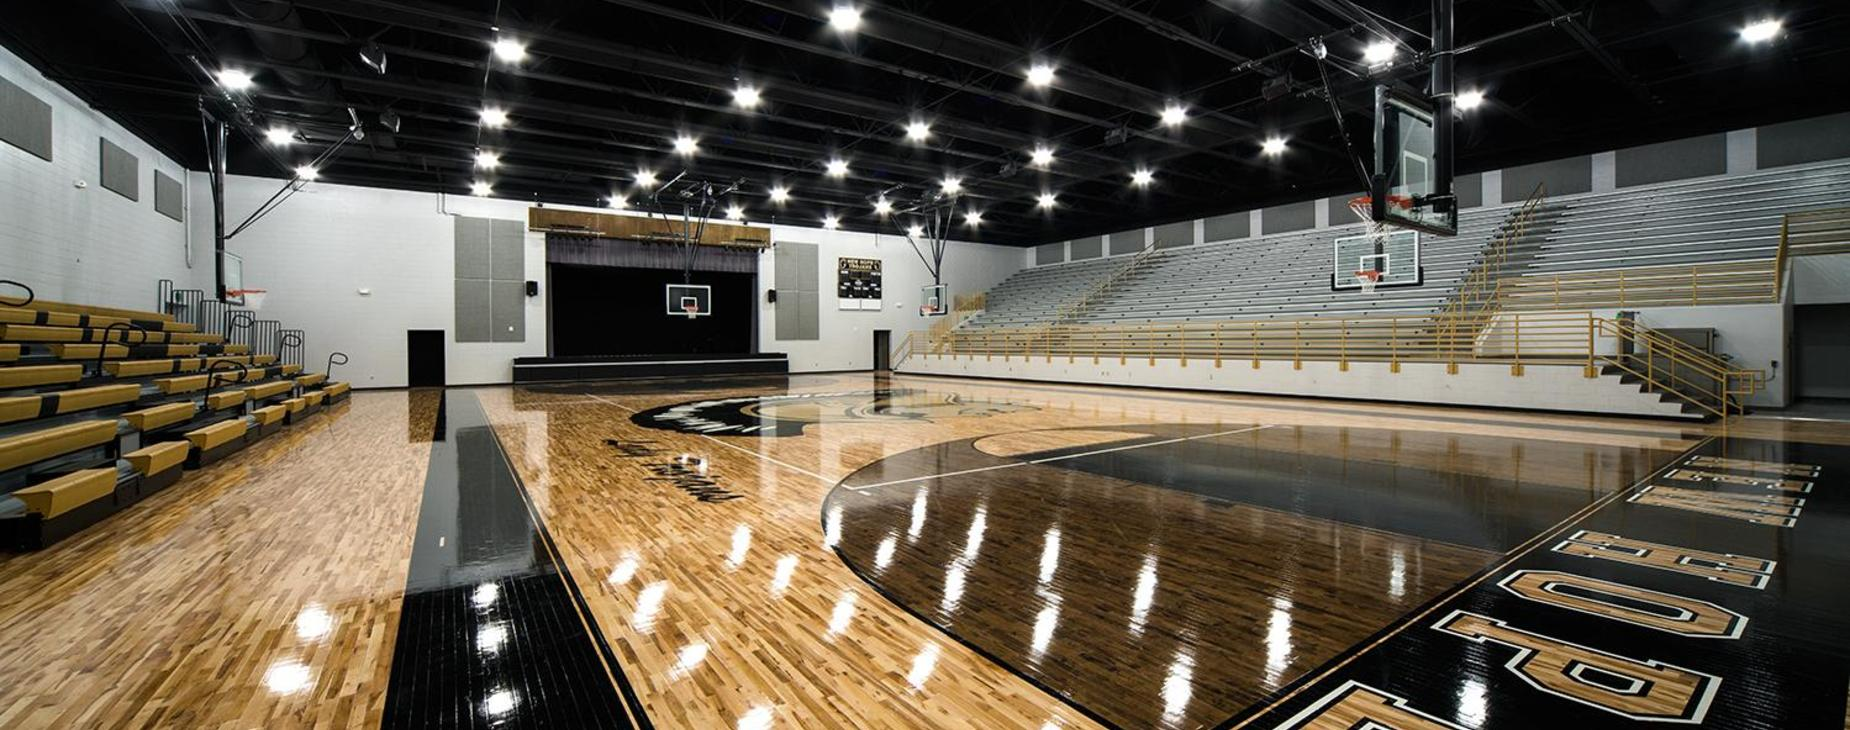 New Hope High School Basketball Gym